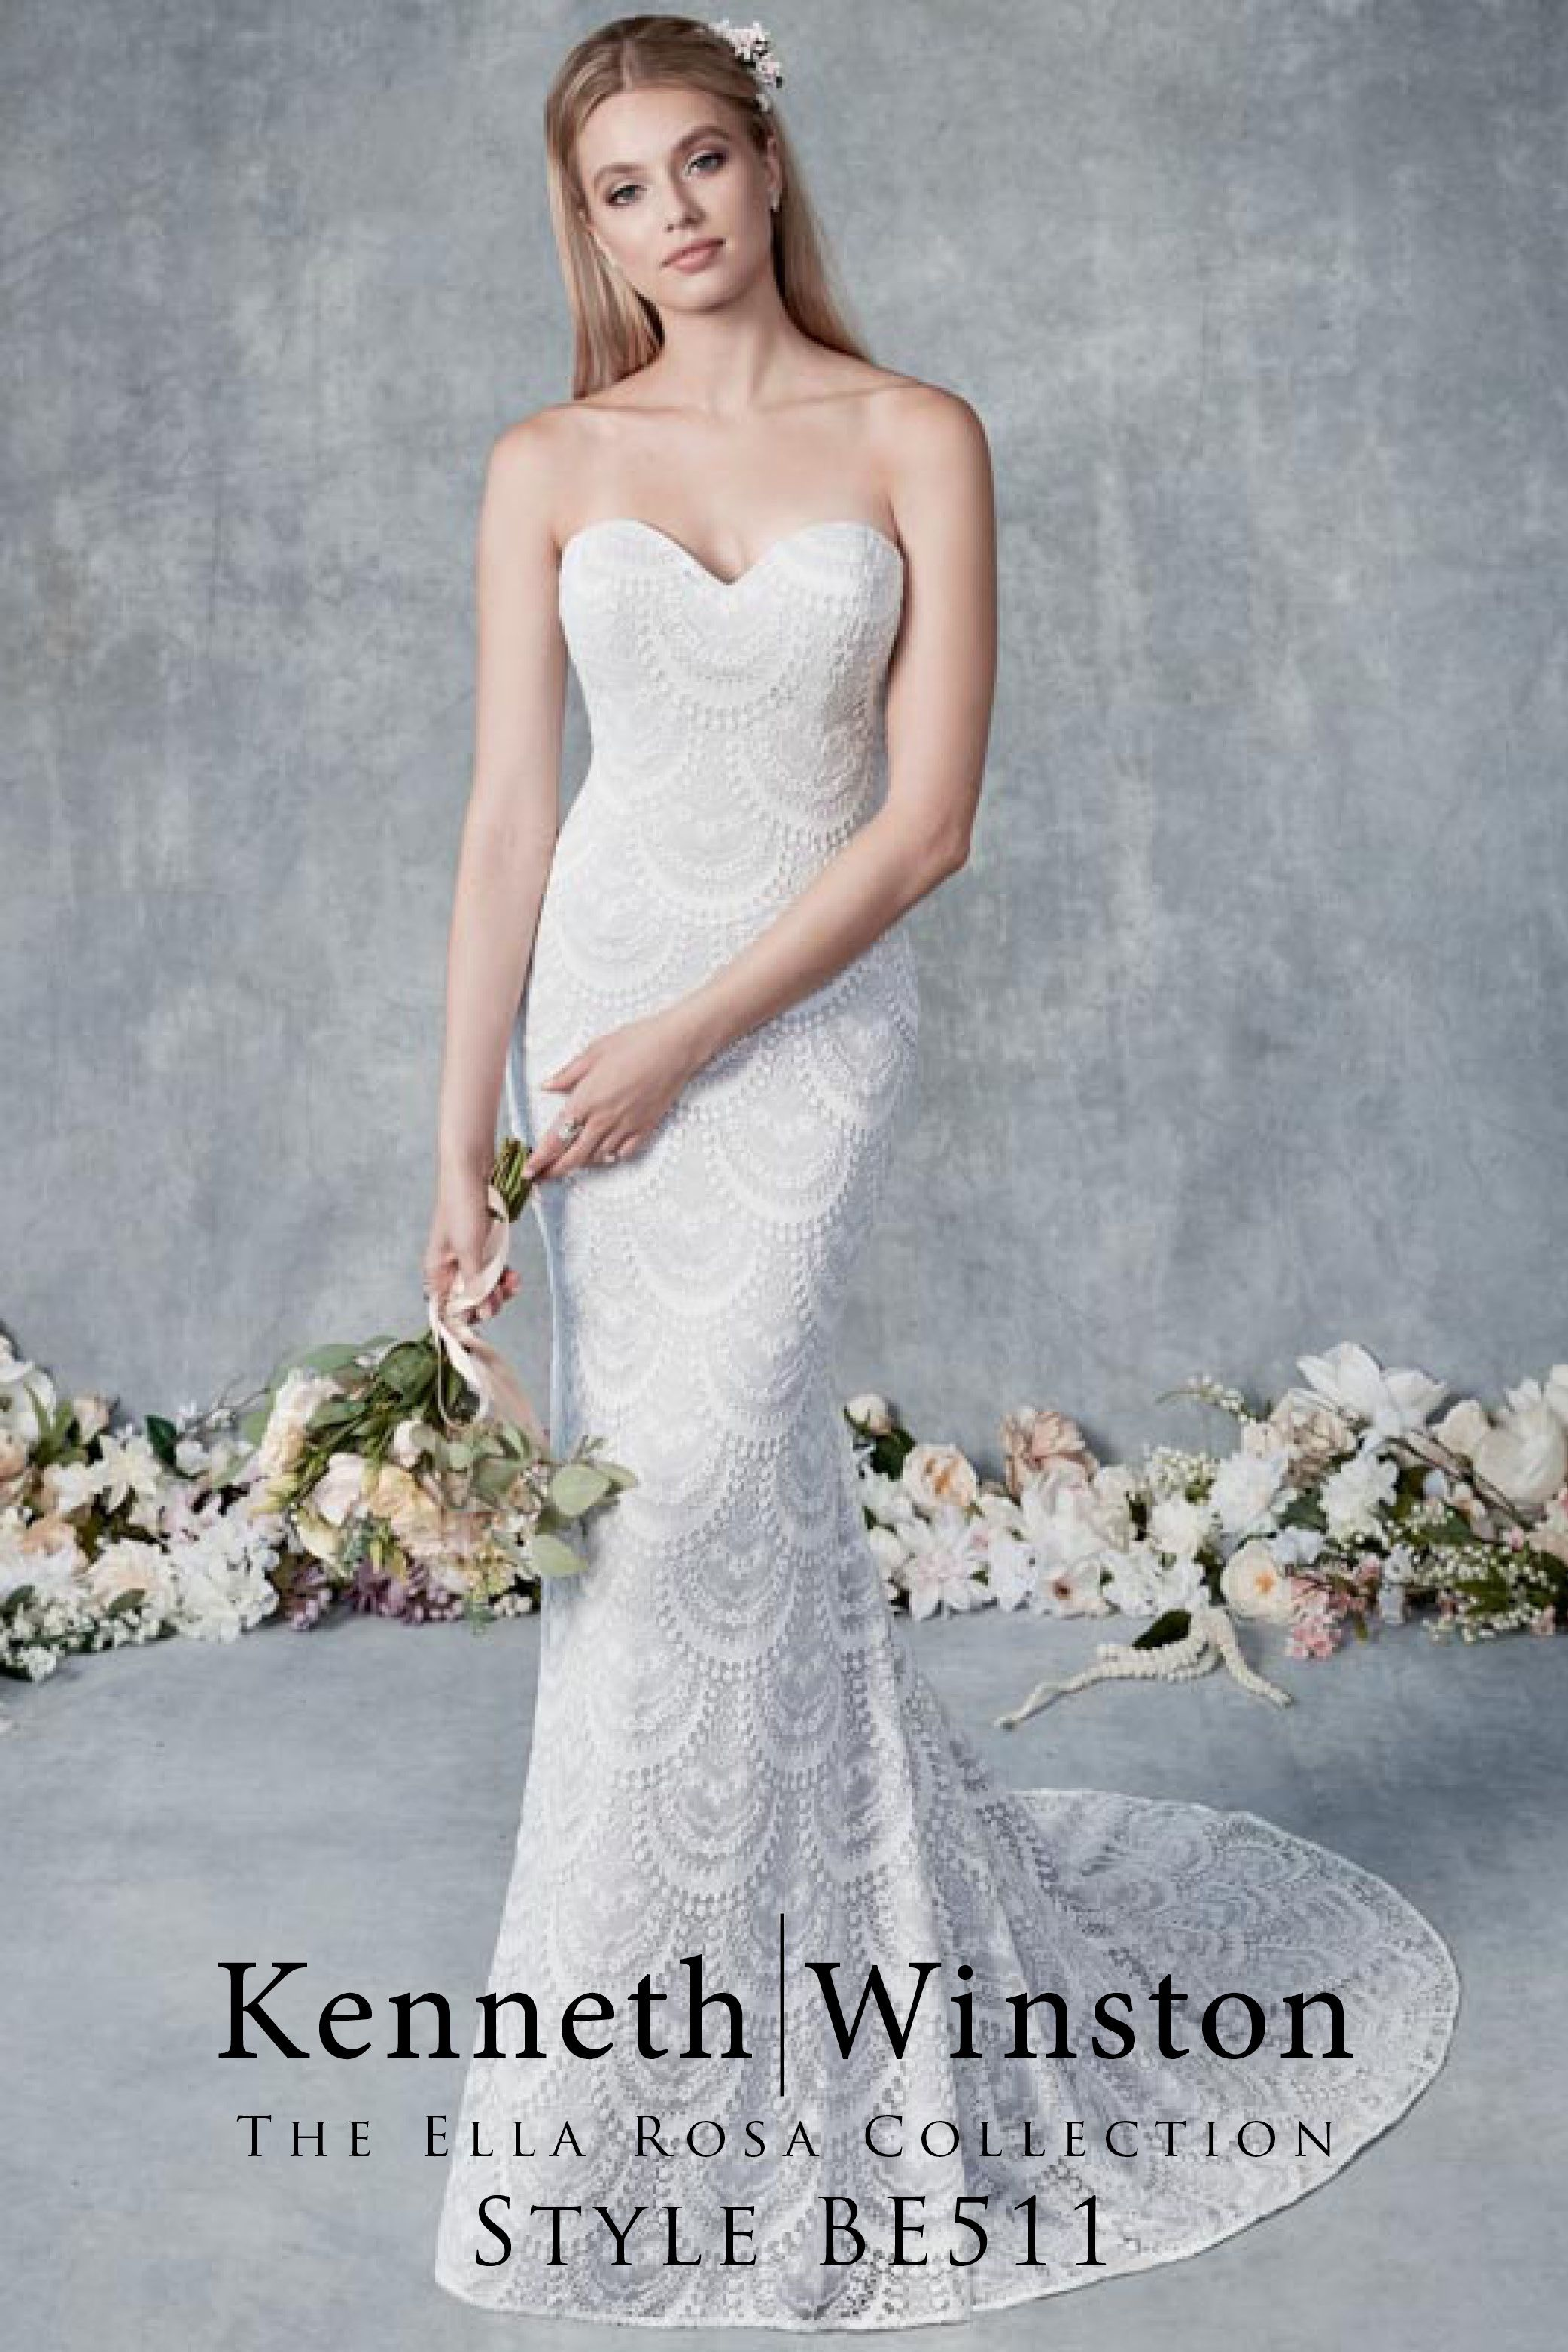 Intricately patterned vintage lace wedding dress shown in